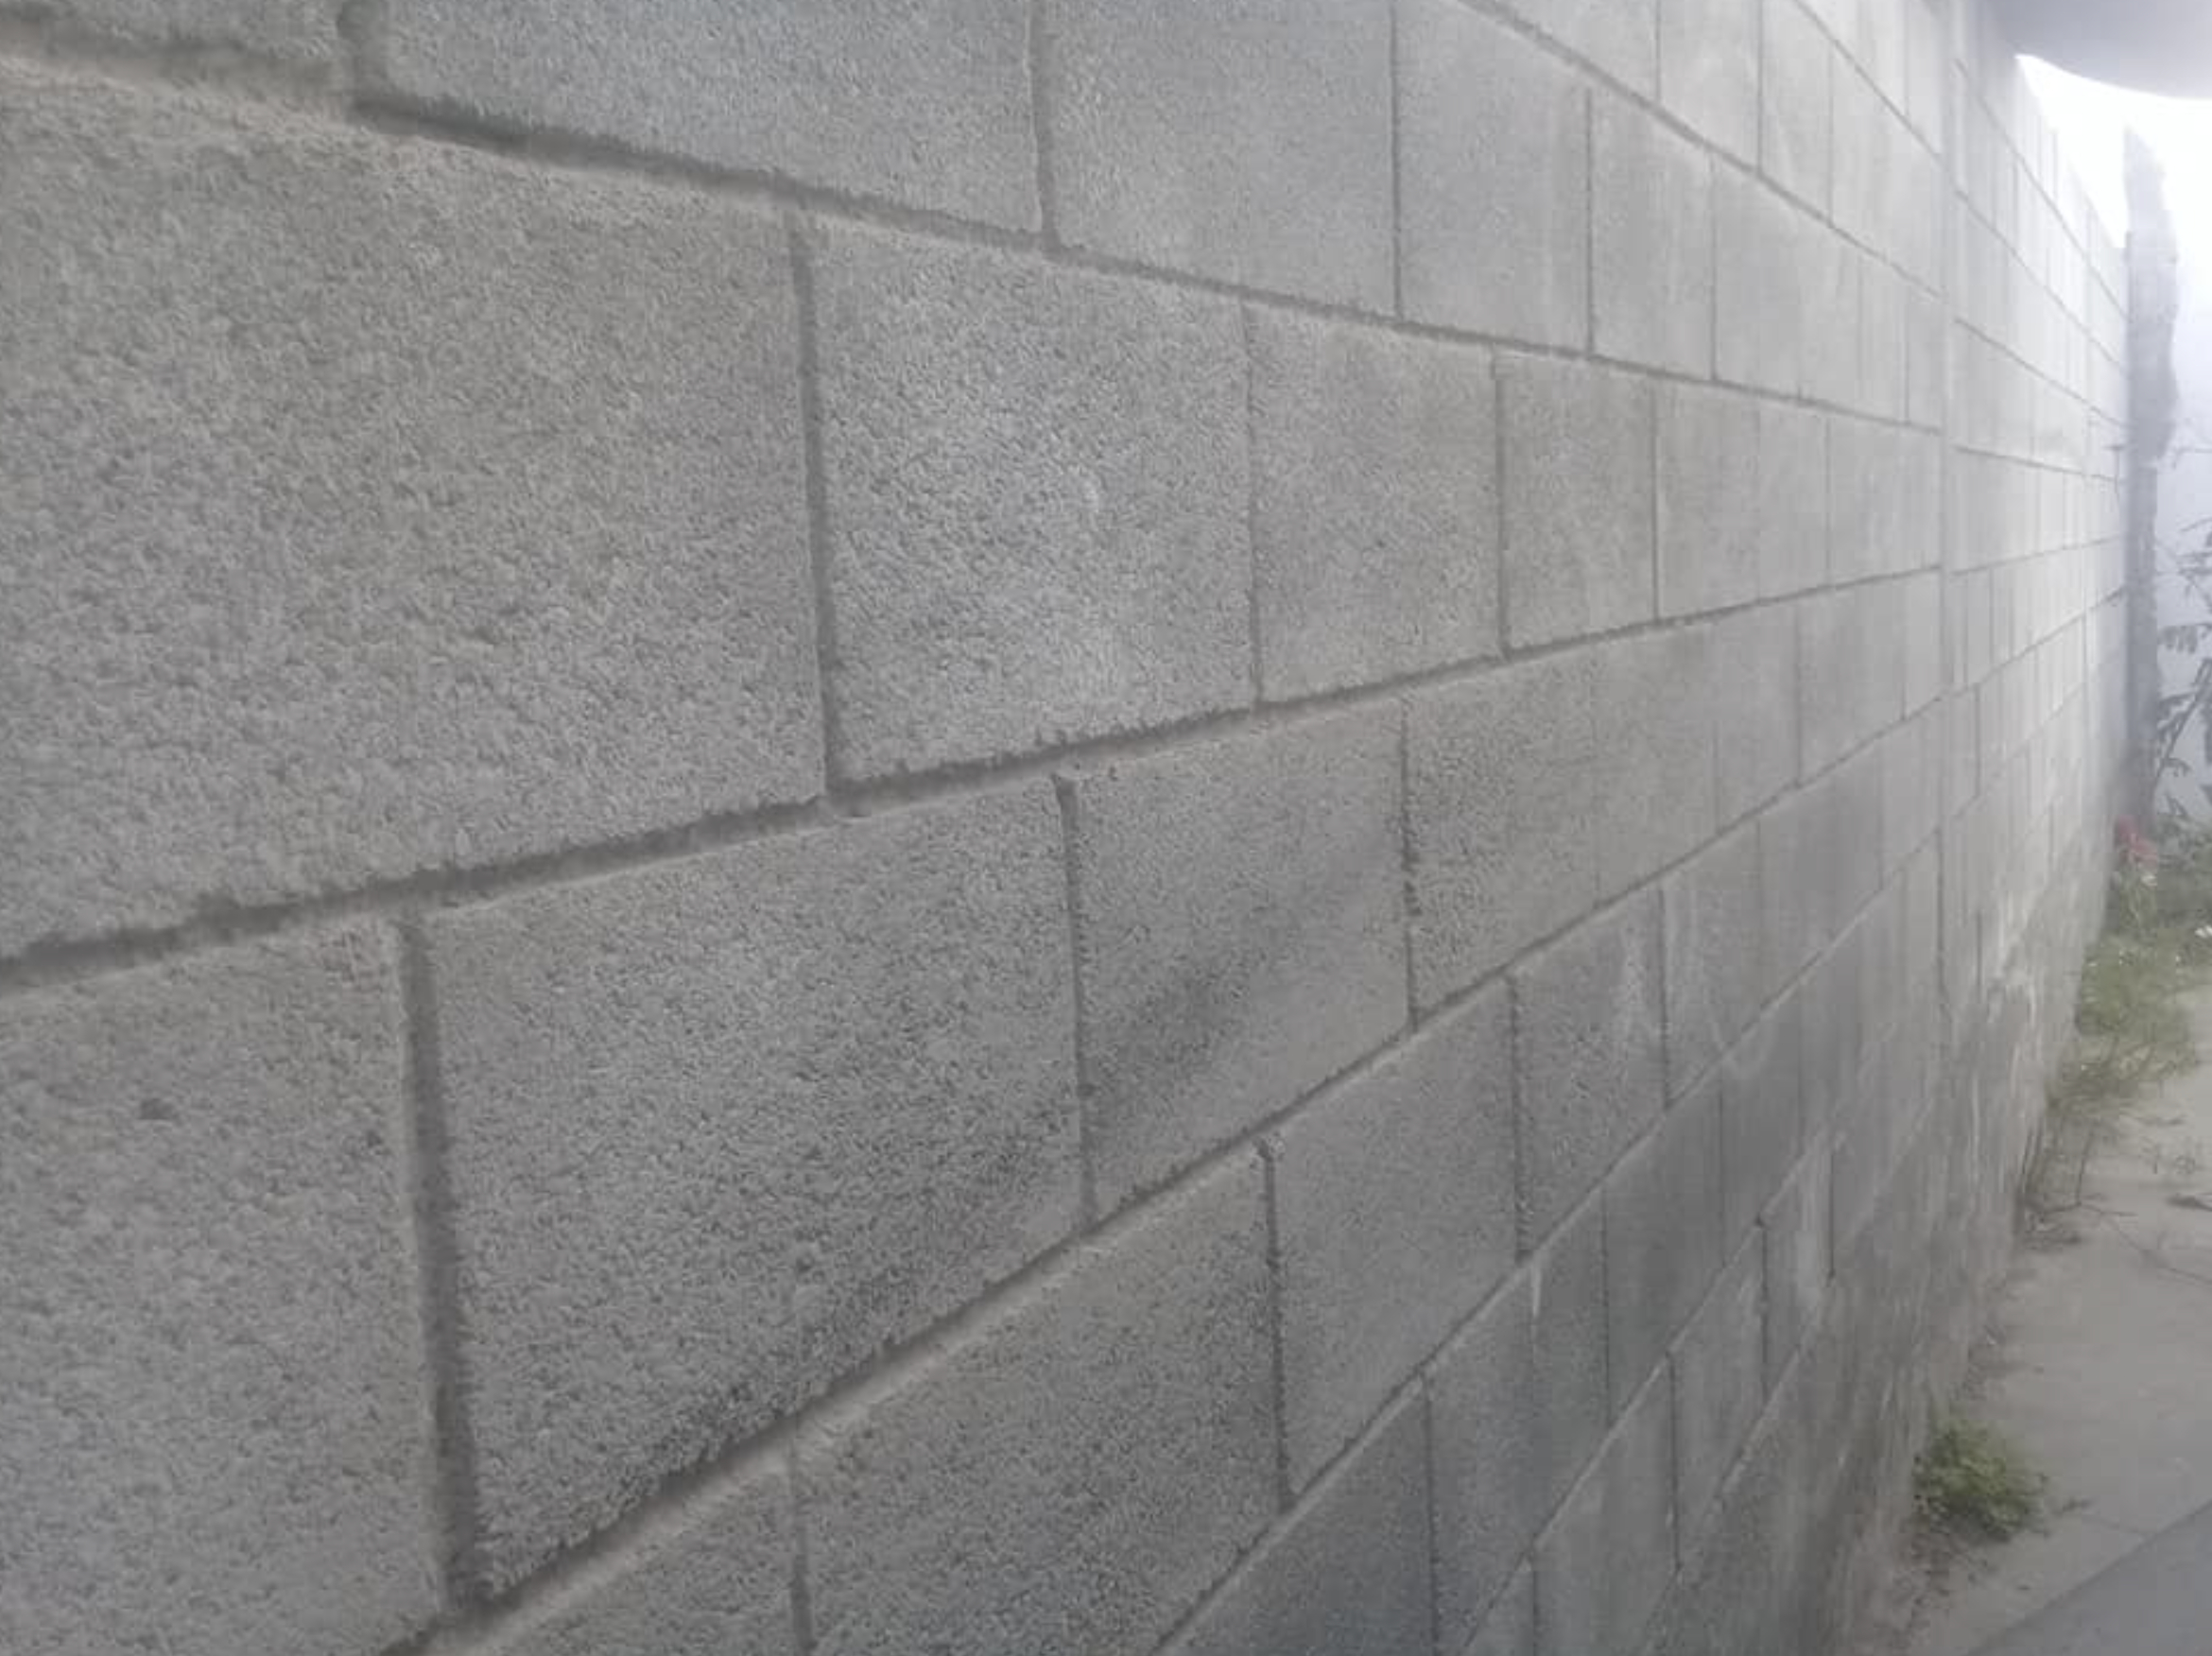 this image shows concrete wall in Carlsbad, California